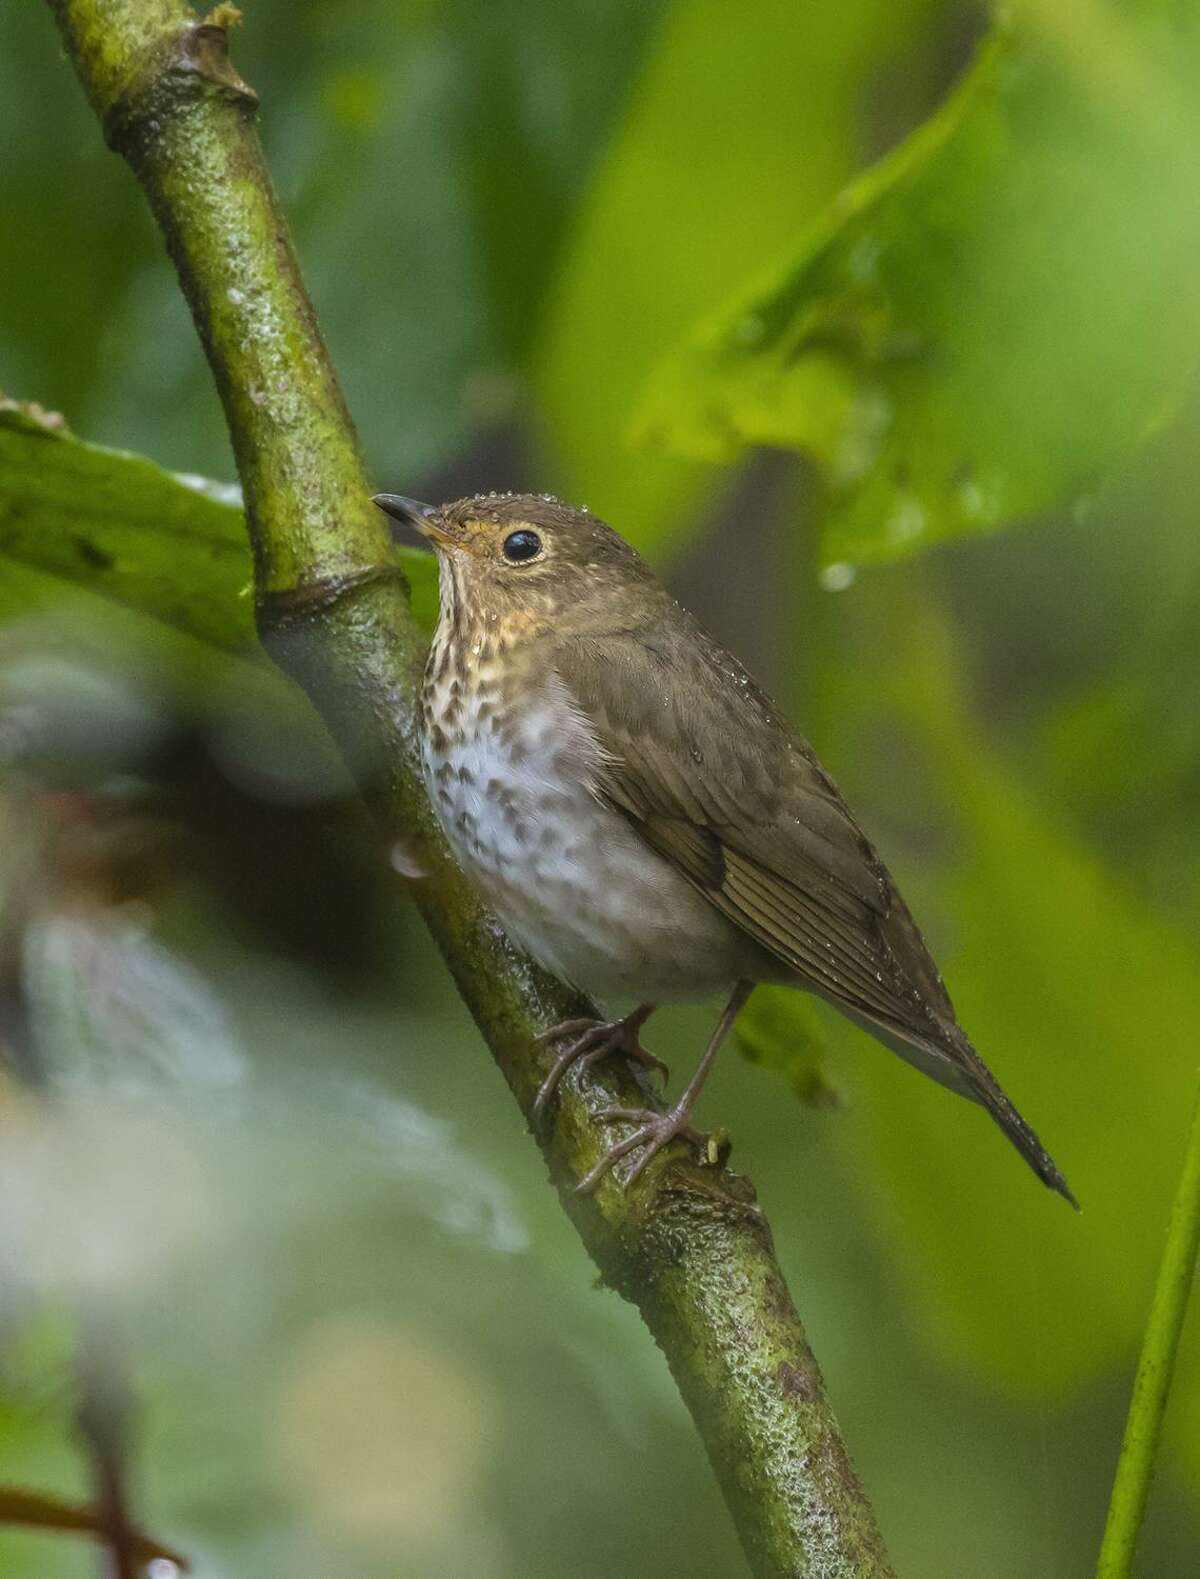 A Swainson's thrush perches under a leaf during a rain shower in the Mindo Valley of Ecuador. The birds migrate through Texas on their way to breeding grounds in the north.